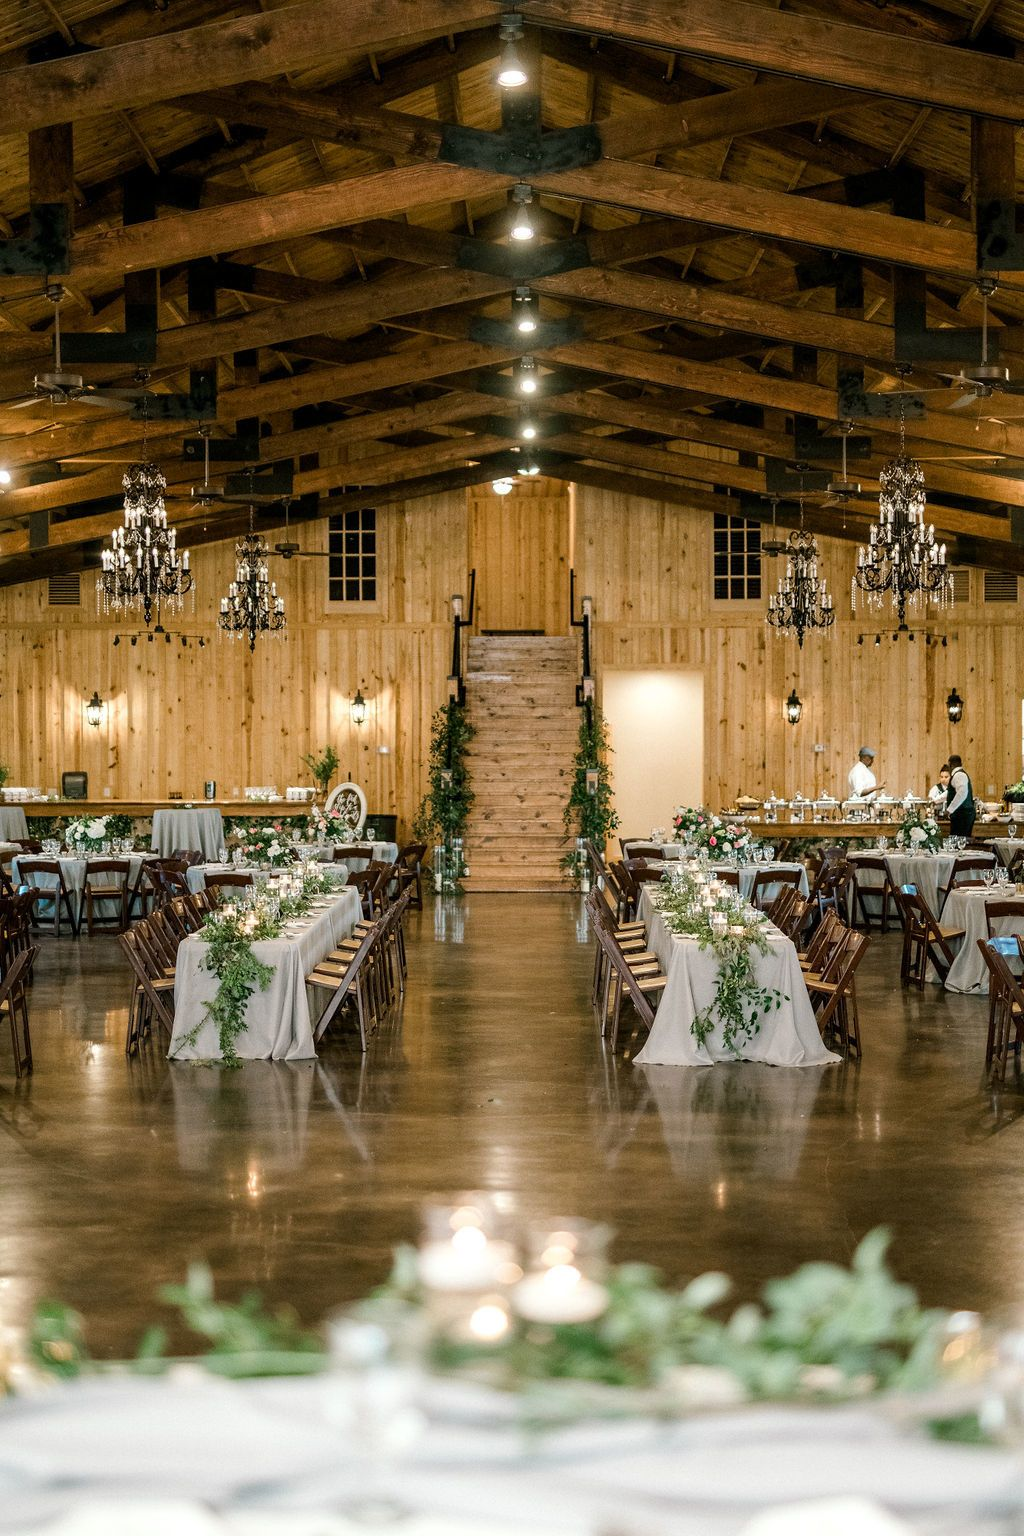 Heart Of The Ranch At Clearfork Fort Worth Texas Wedding Venues 2 Fort Worth Wedding Wedding Venues Texas Fort Worth Wedding Venues Texas